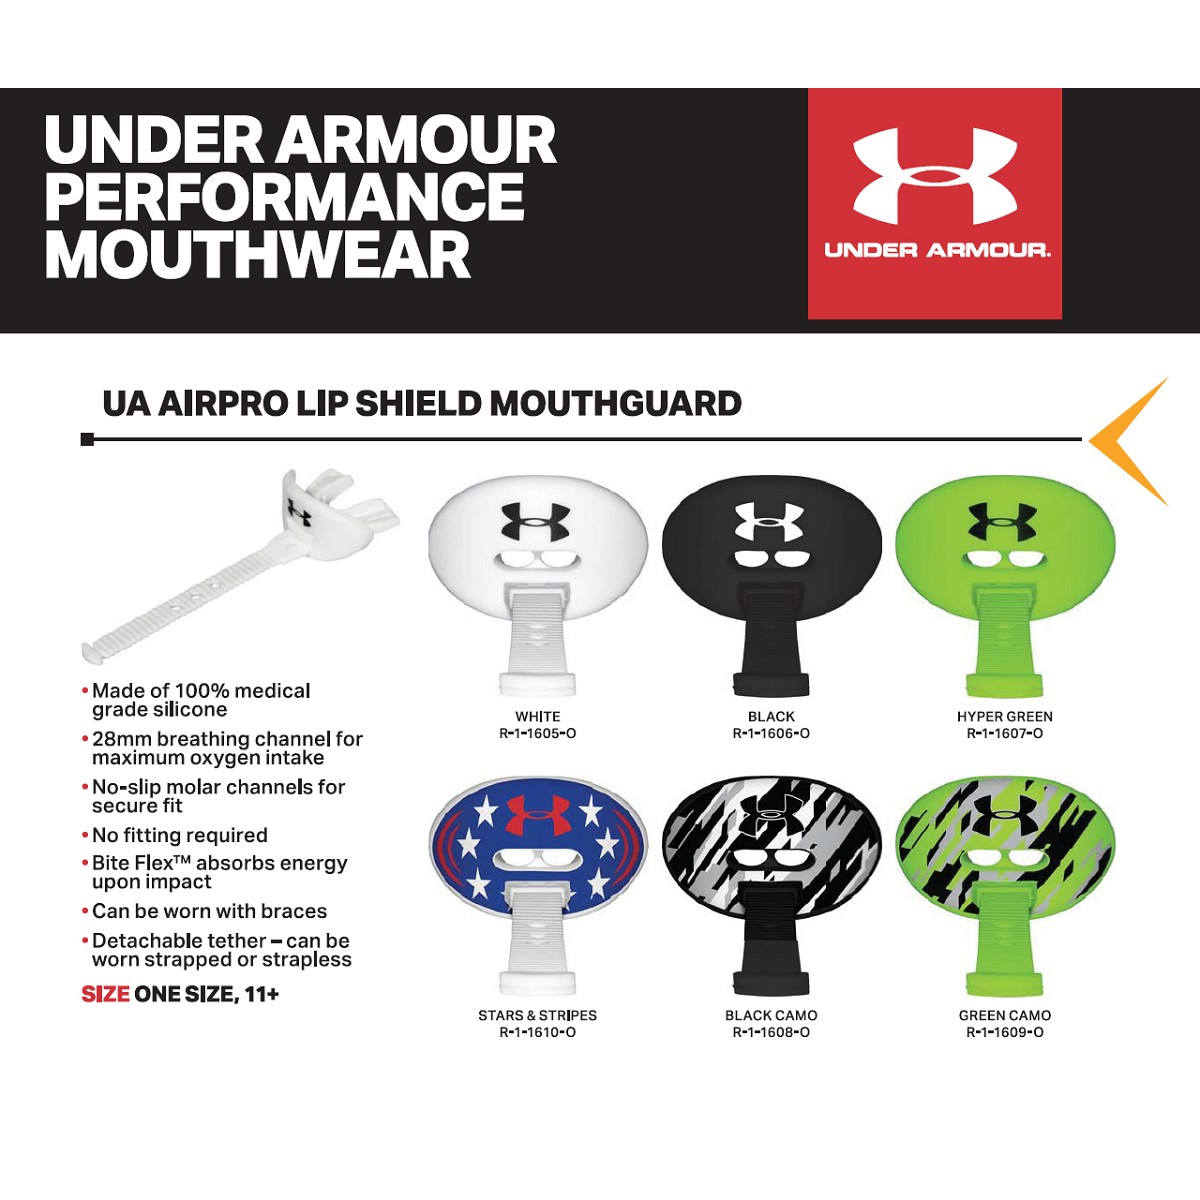 Under Armour Airpro Lip Shield Mouthguard